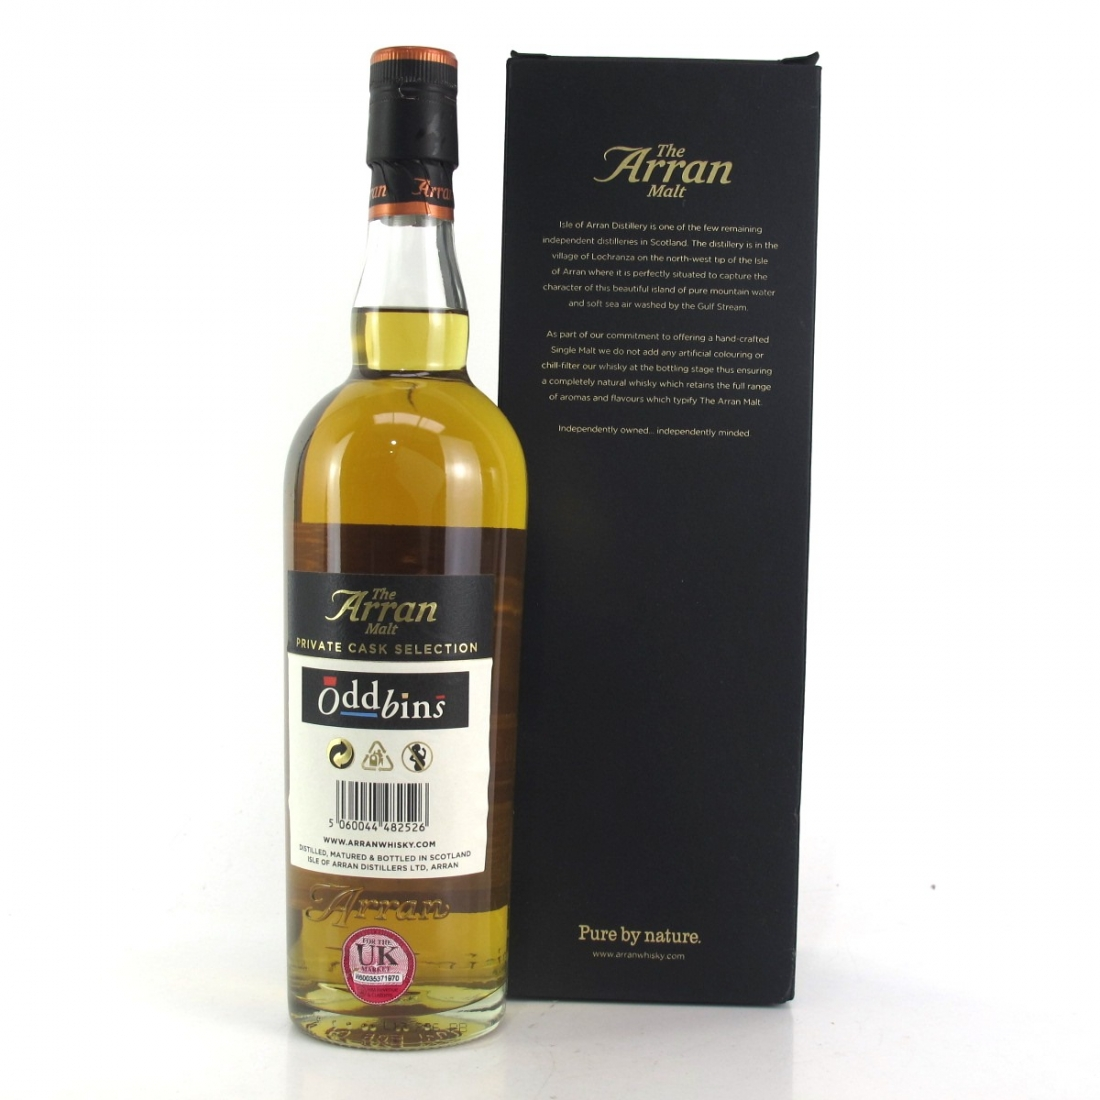 Arran 2003 Single Cask 14 Year Old / Oddbins Exclusive